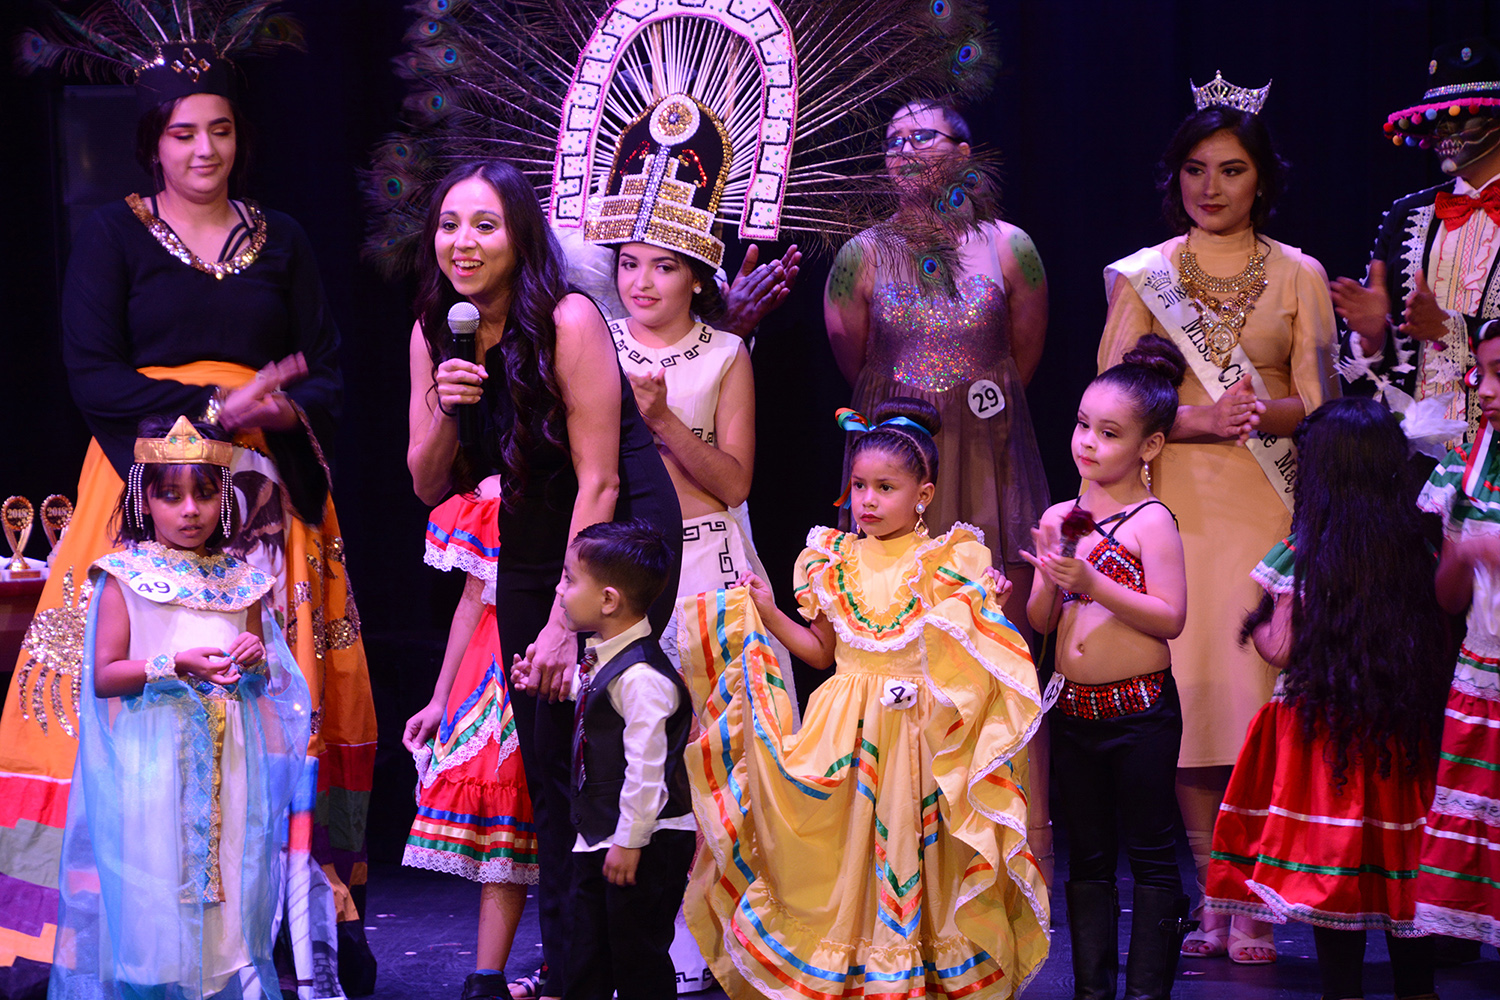 Janeth Vasquez, SCCC's transfer advisor,  hosted the Multicultural Fashion show to showcase  diversity in Liberal. Despite snow keeping some of the participants away, the show featured cultures from Ghana, American Indian, Hispanic and more.